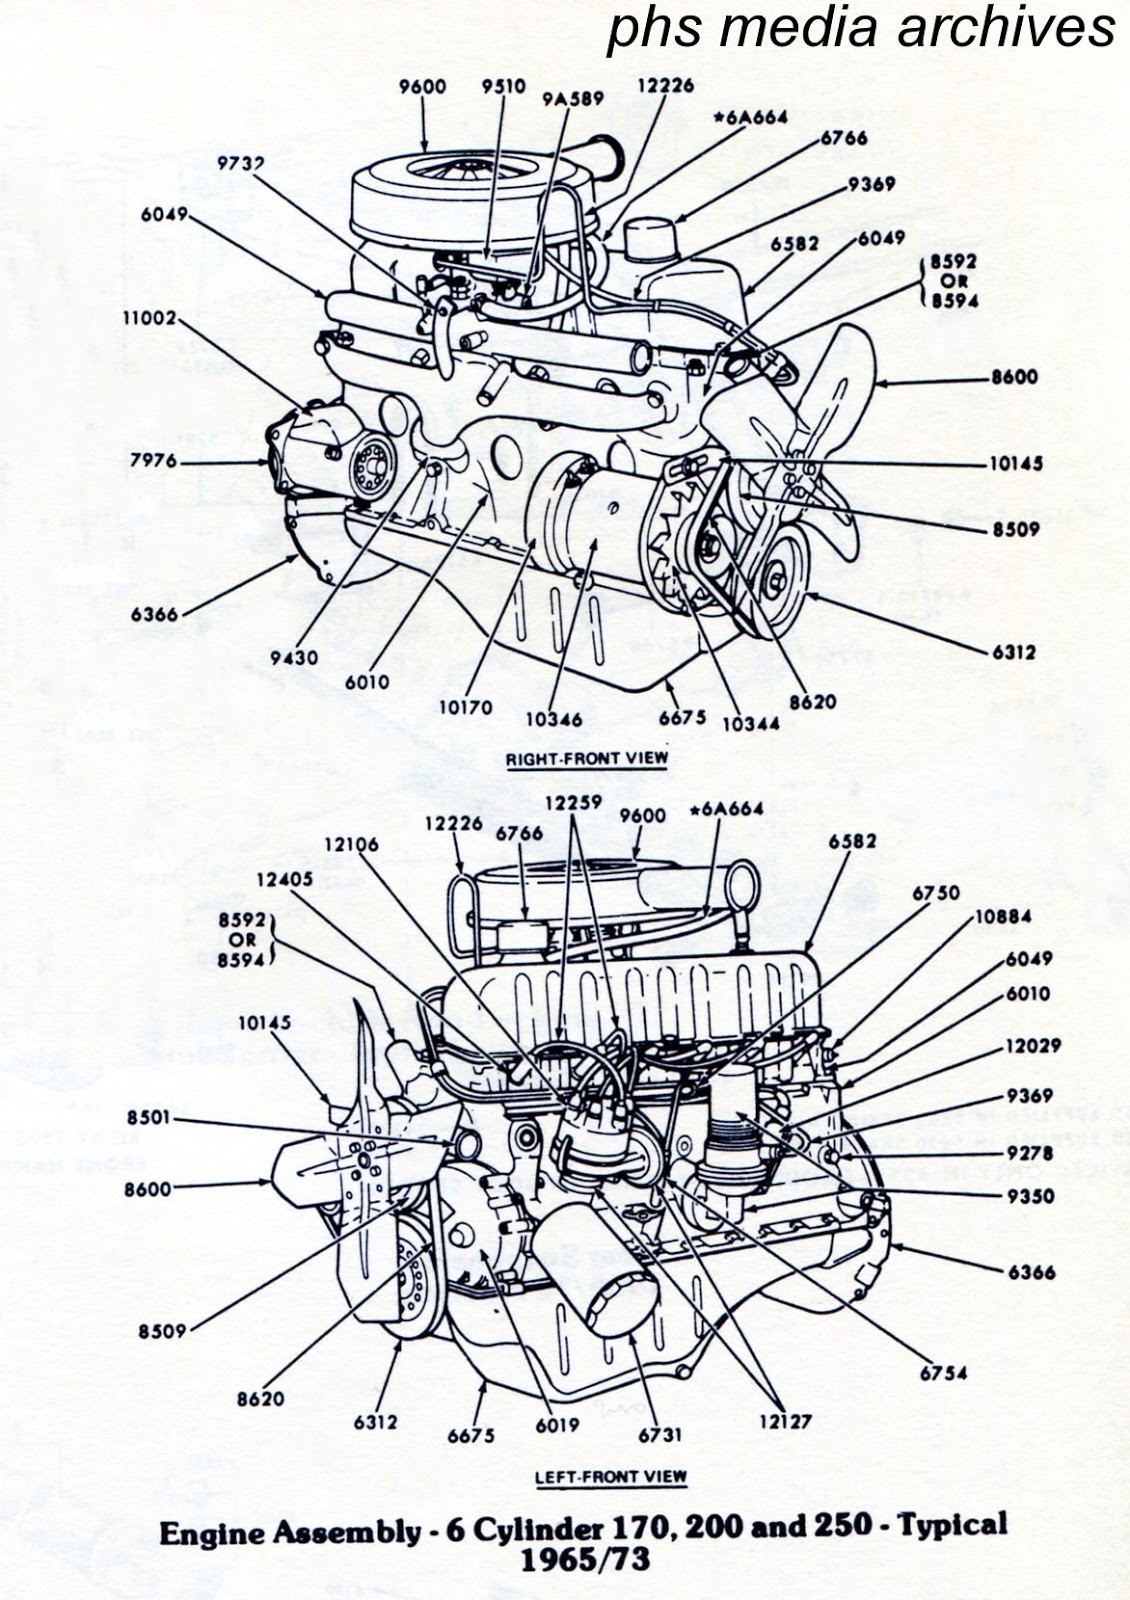 medium resolution of the straight six engine changed in displacement over the years to become a 250 by 1971